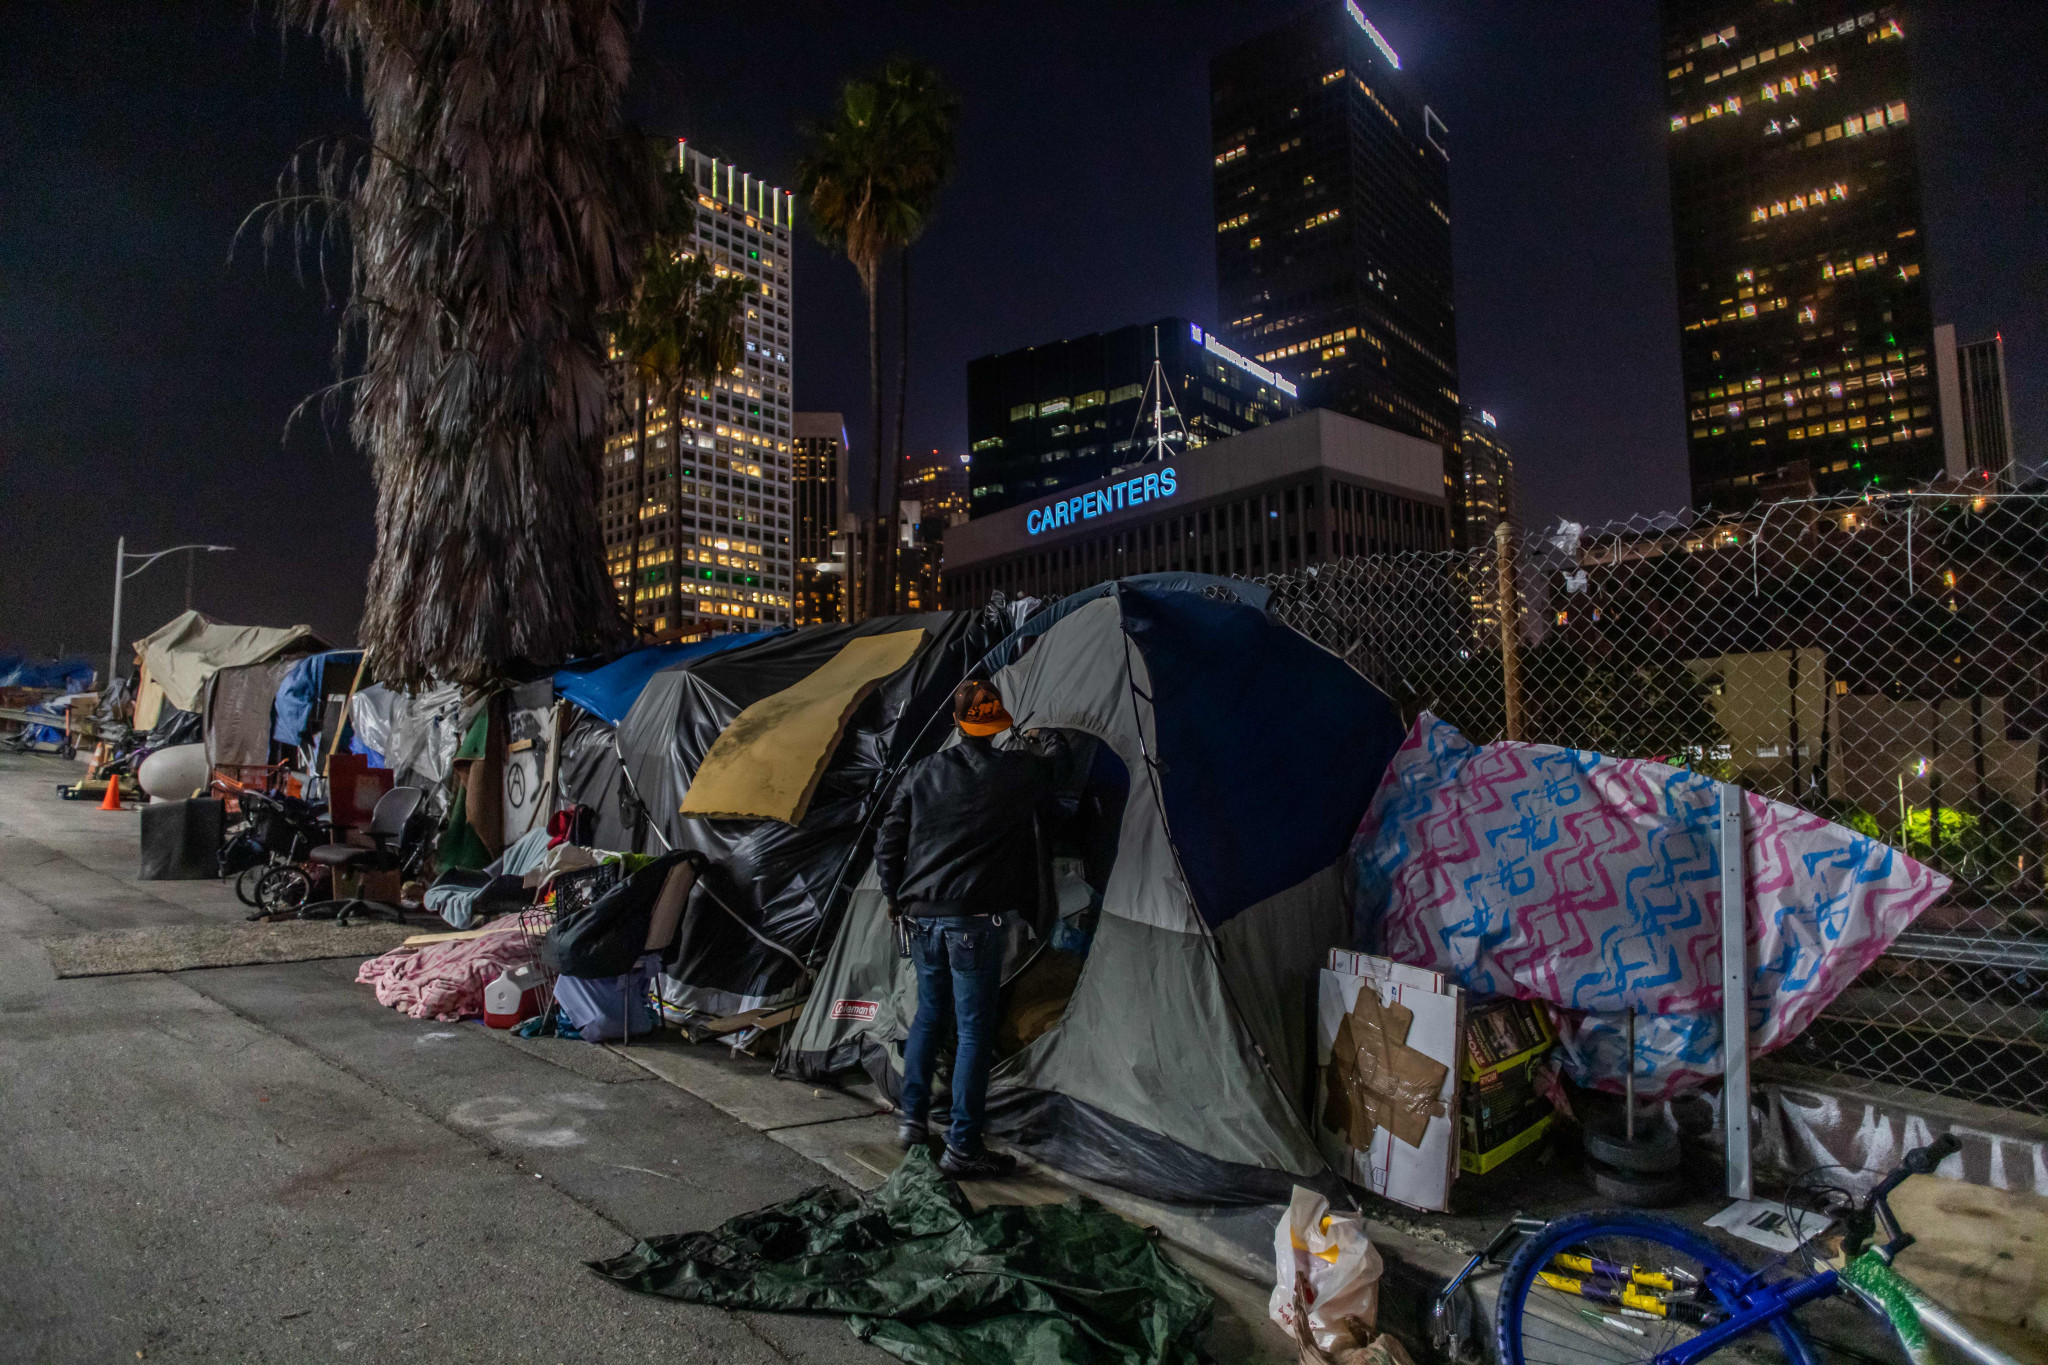 It is estimated that 60,000 people a night are homeless in Los Angeles ©Getty Images